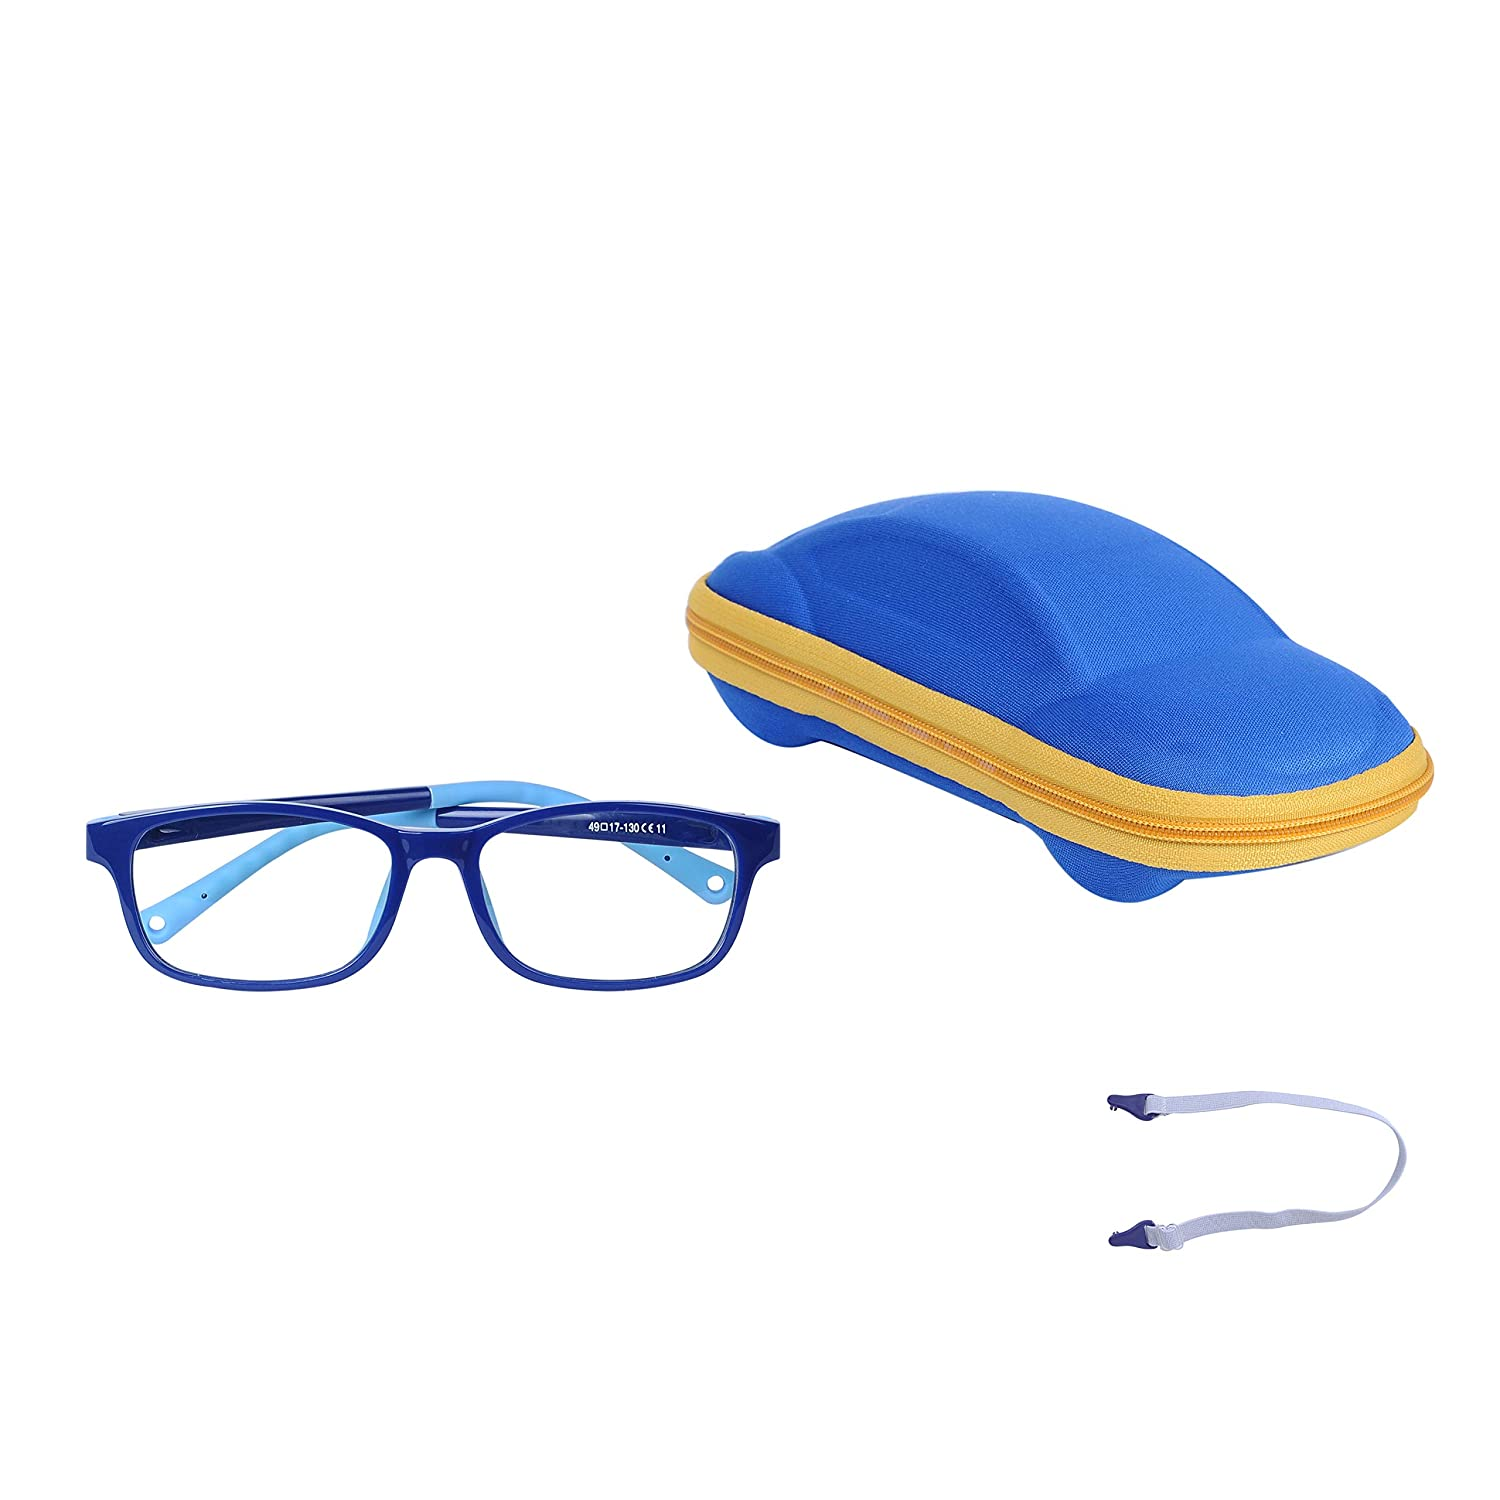 Case Cleaning Cloth Kids Computer Glasses Anti Blue Light Boys Girls Adjustable Strap Anti Slip Design